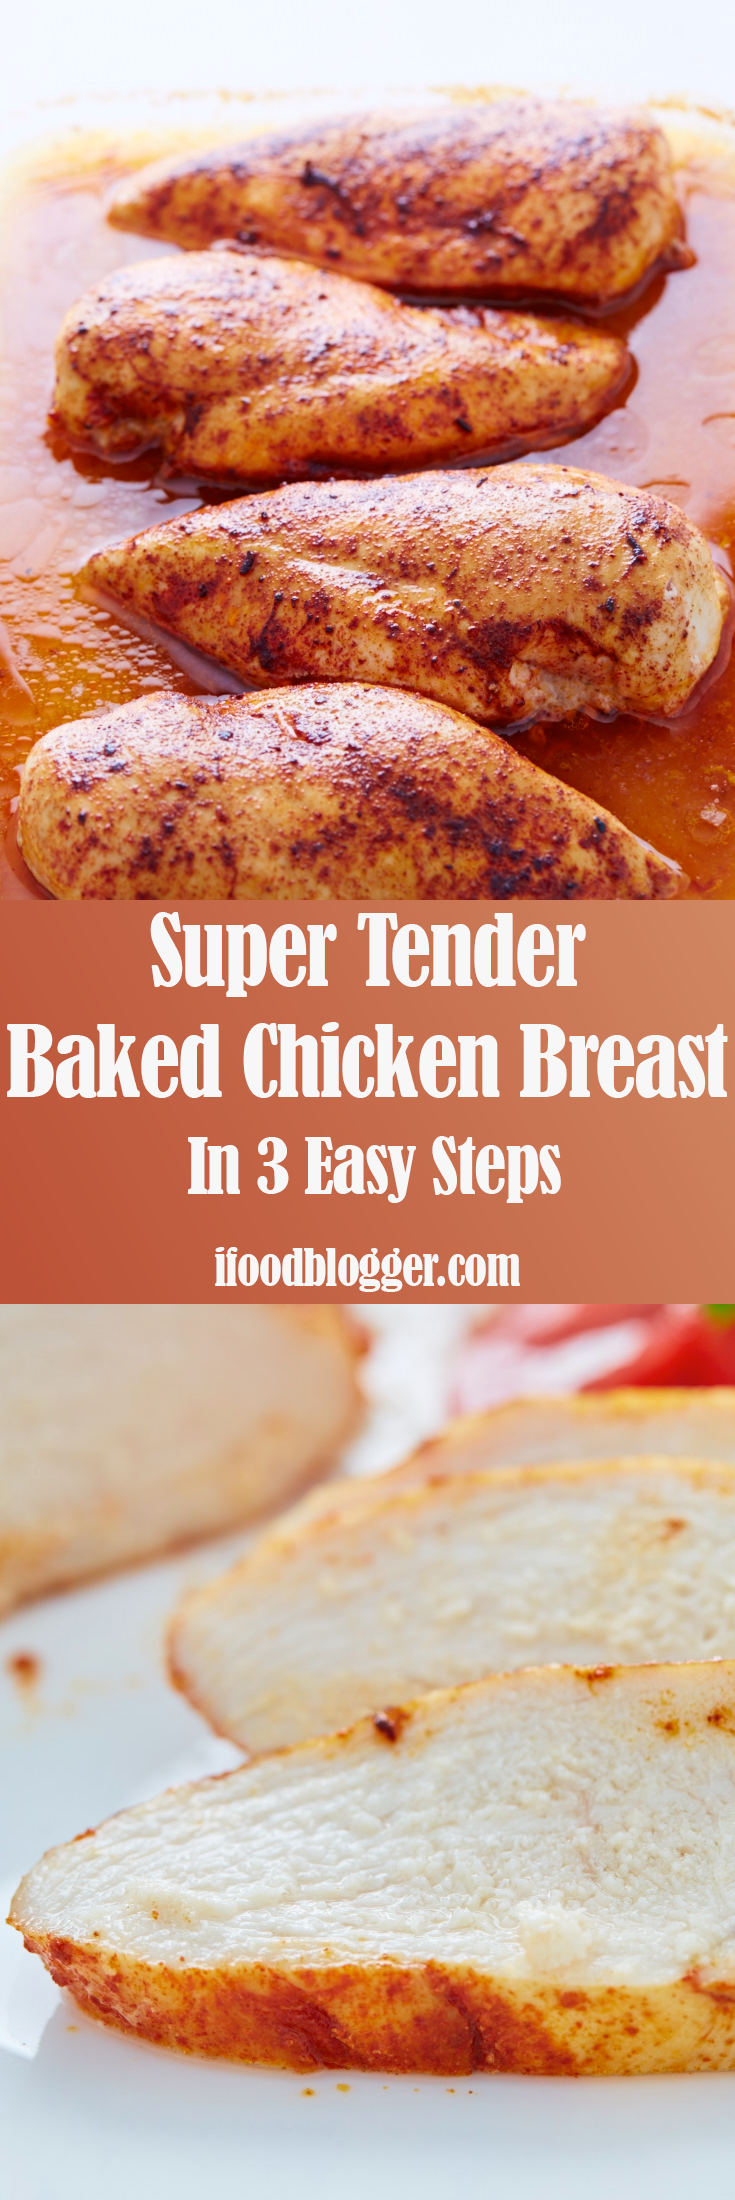 This baked chicken breast is melt-in-your-mouth tender and ...